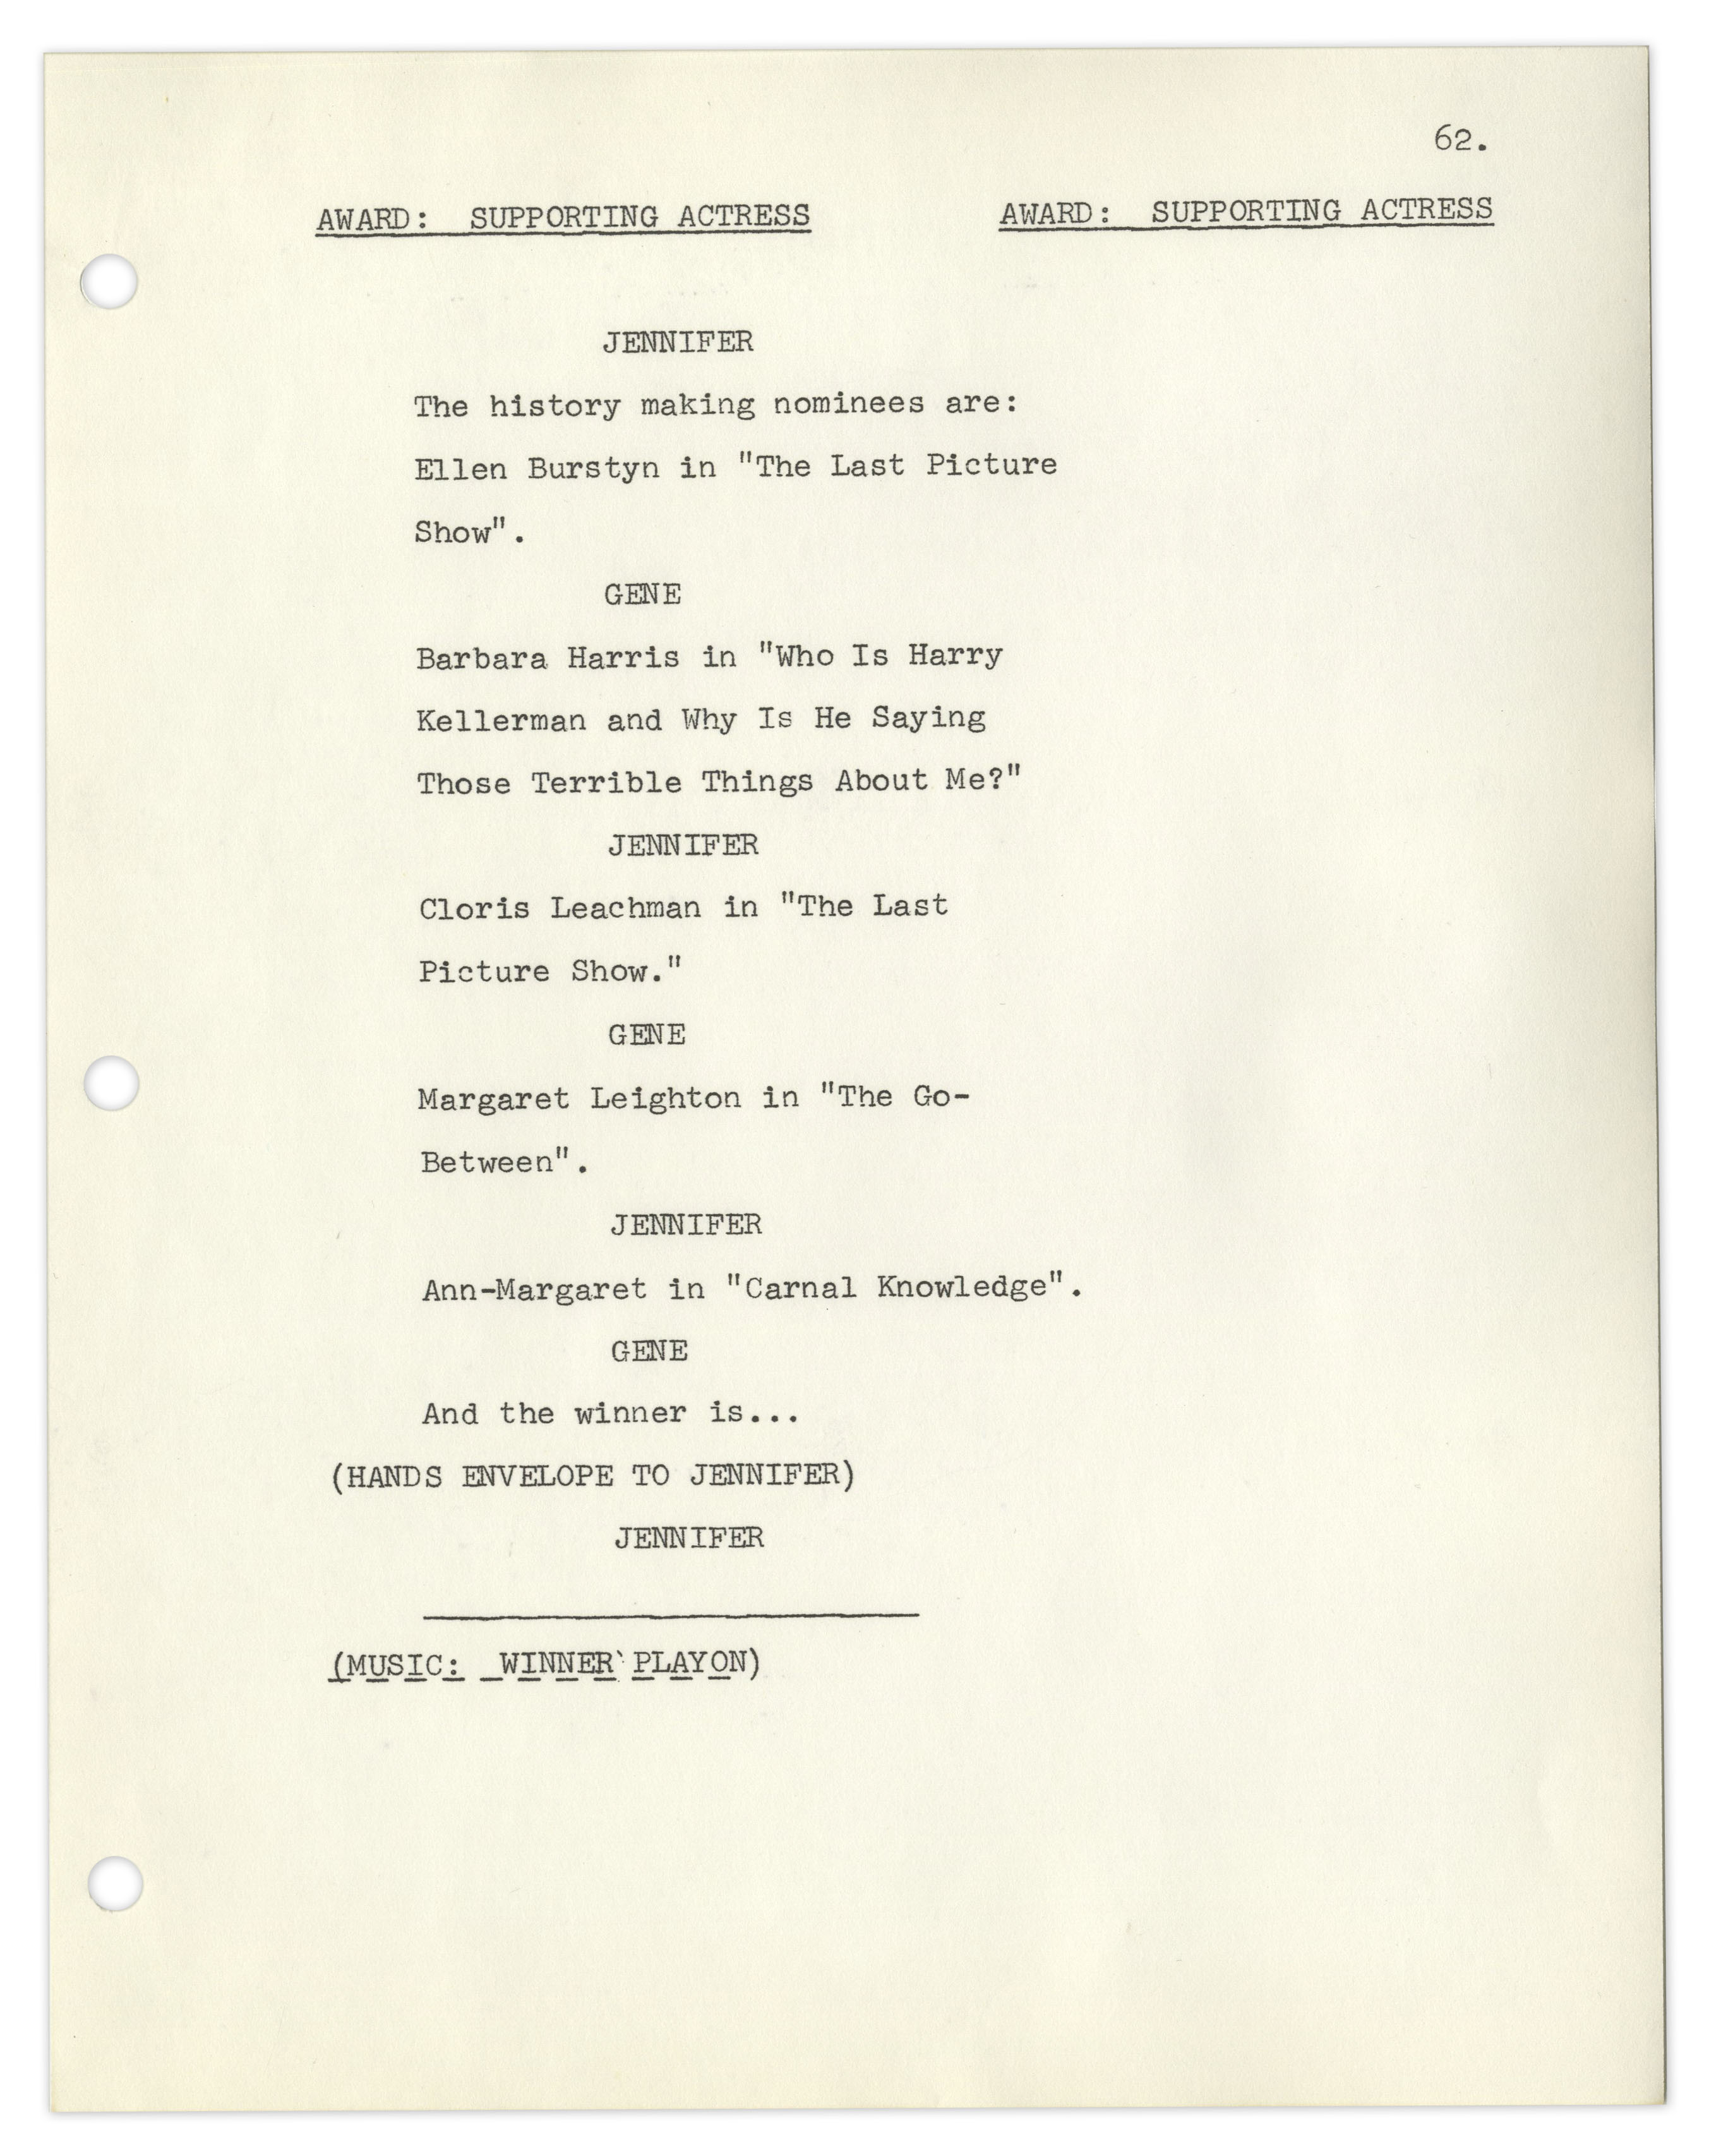 lot detail complete first draft production script and invitation